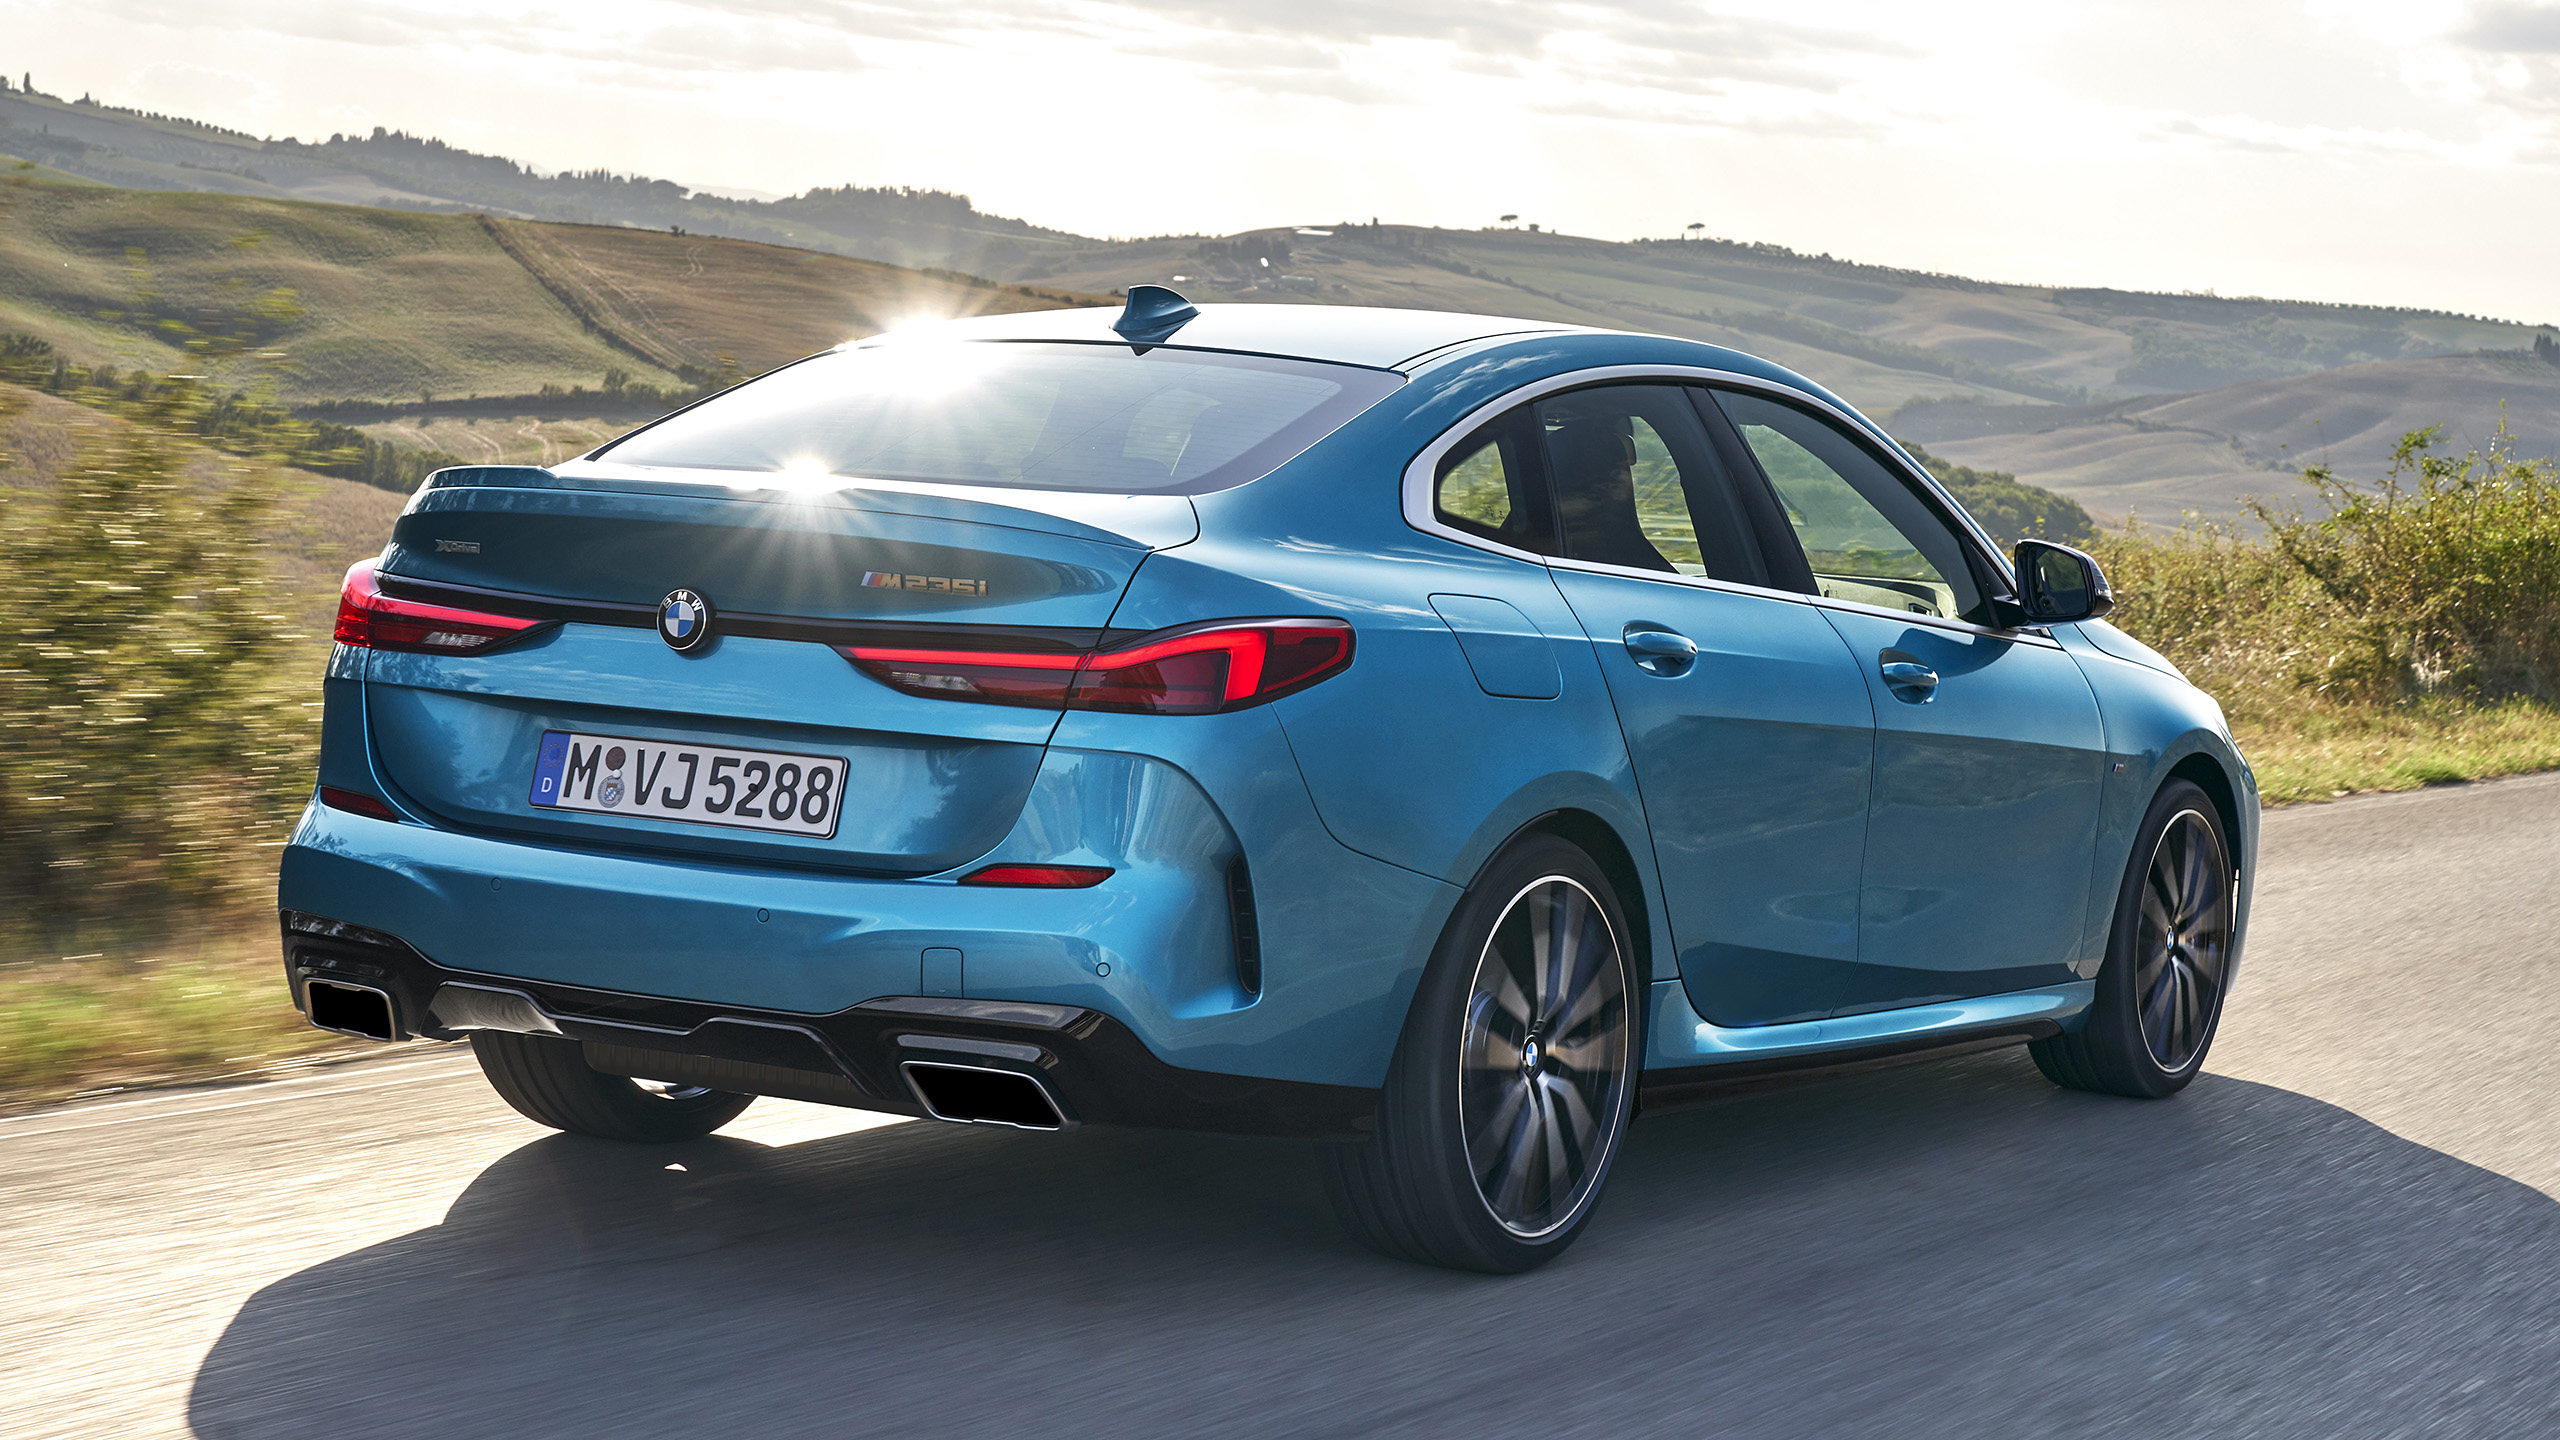 2020 Bmw 2 Series Gran Coupe First Drive What S New M235i And 228i Gran Coupes Driving Impressions Autoblog